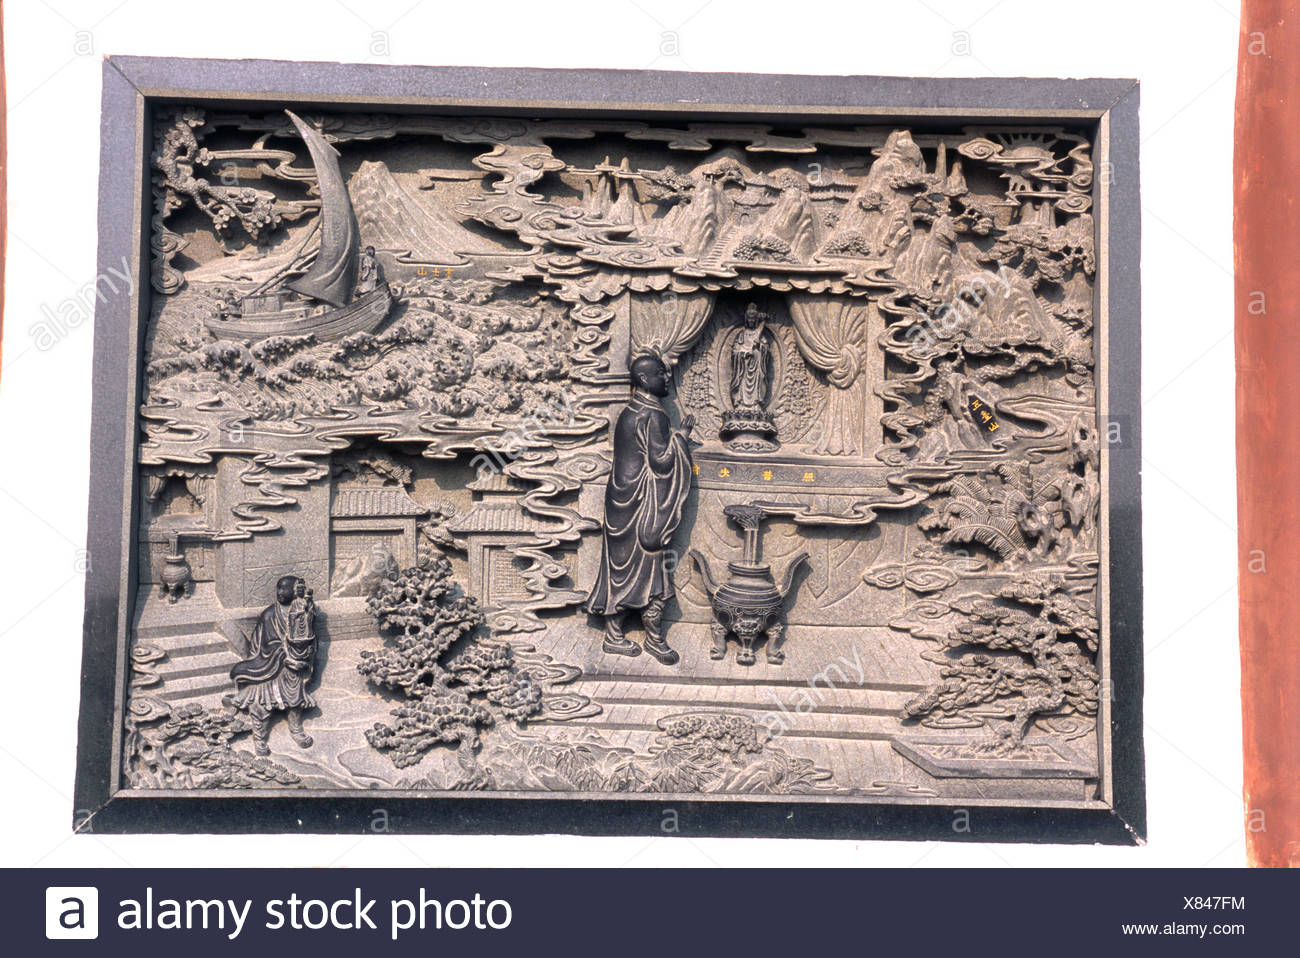 China, Zhejiang, Putuo Shan, intricately carved stonework frieze depicting Hui'e sailing in violent storm - Stock Image